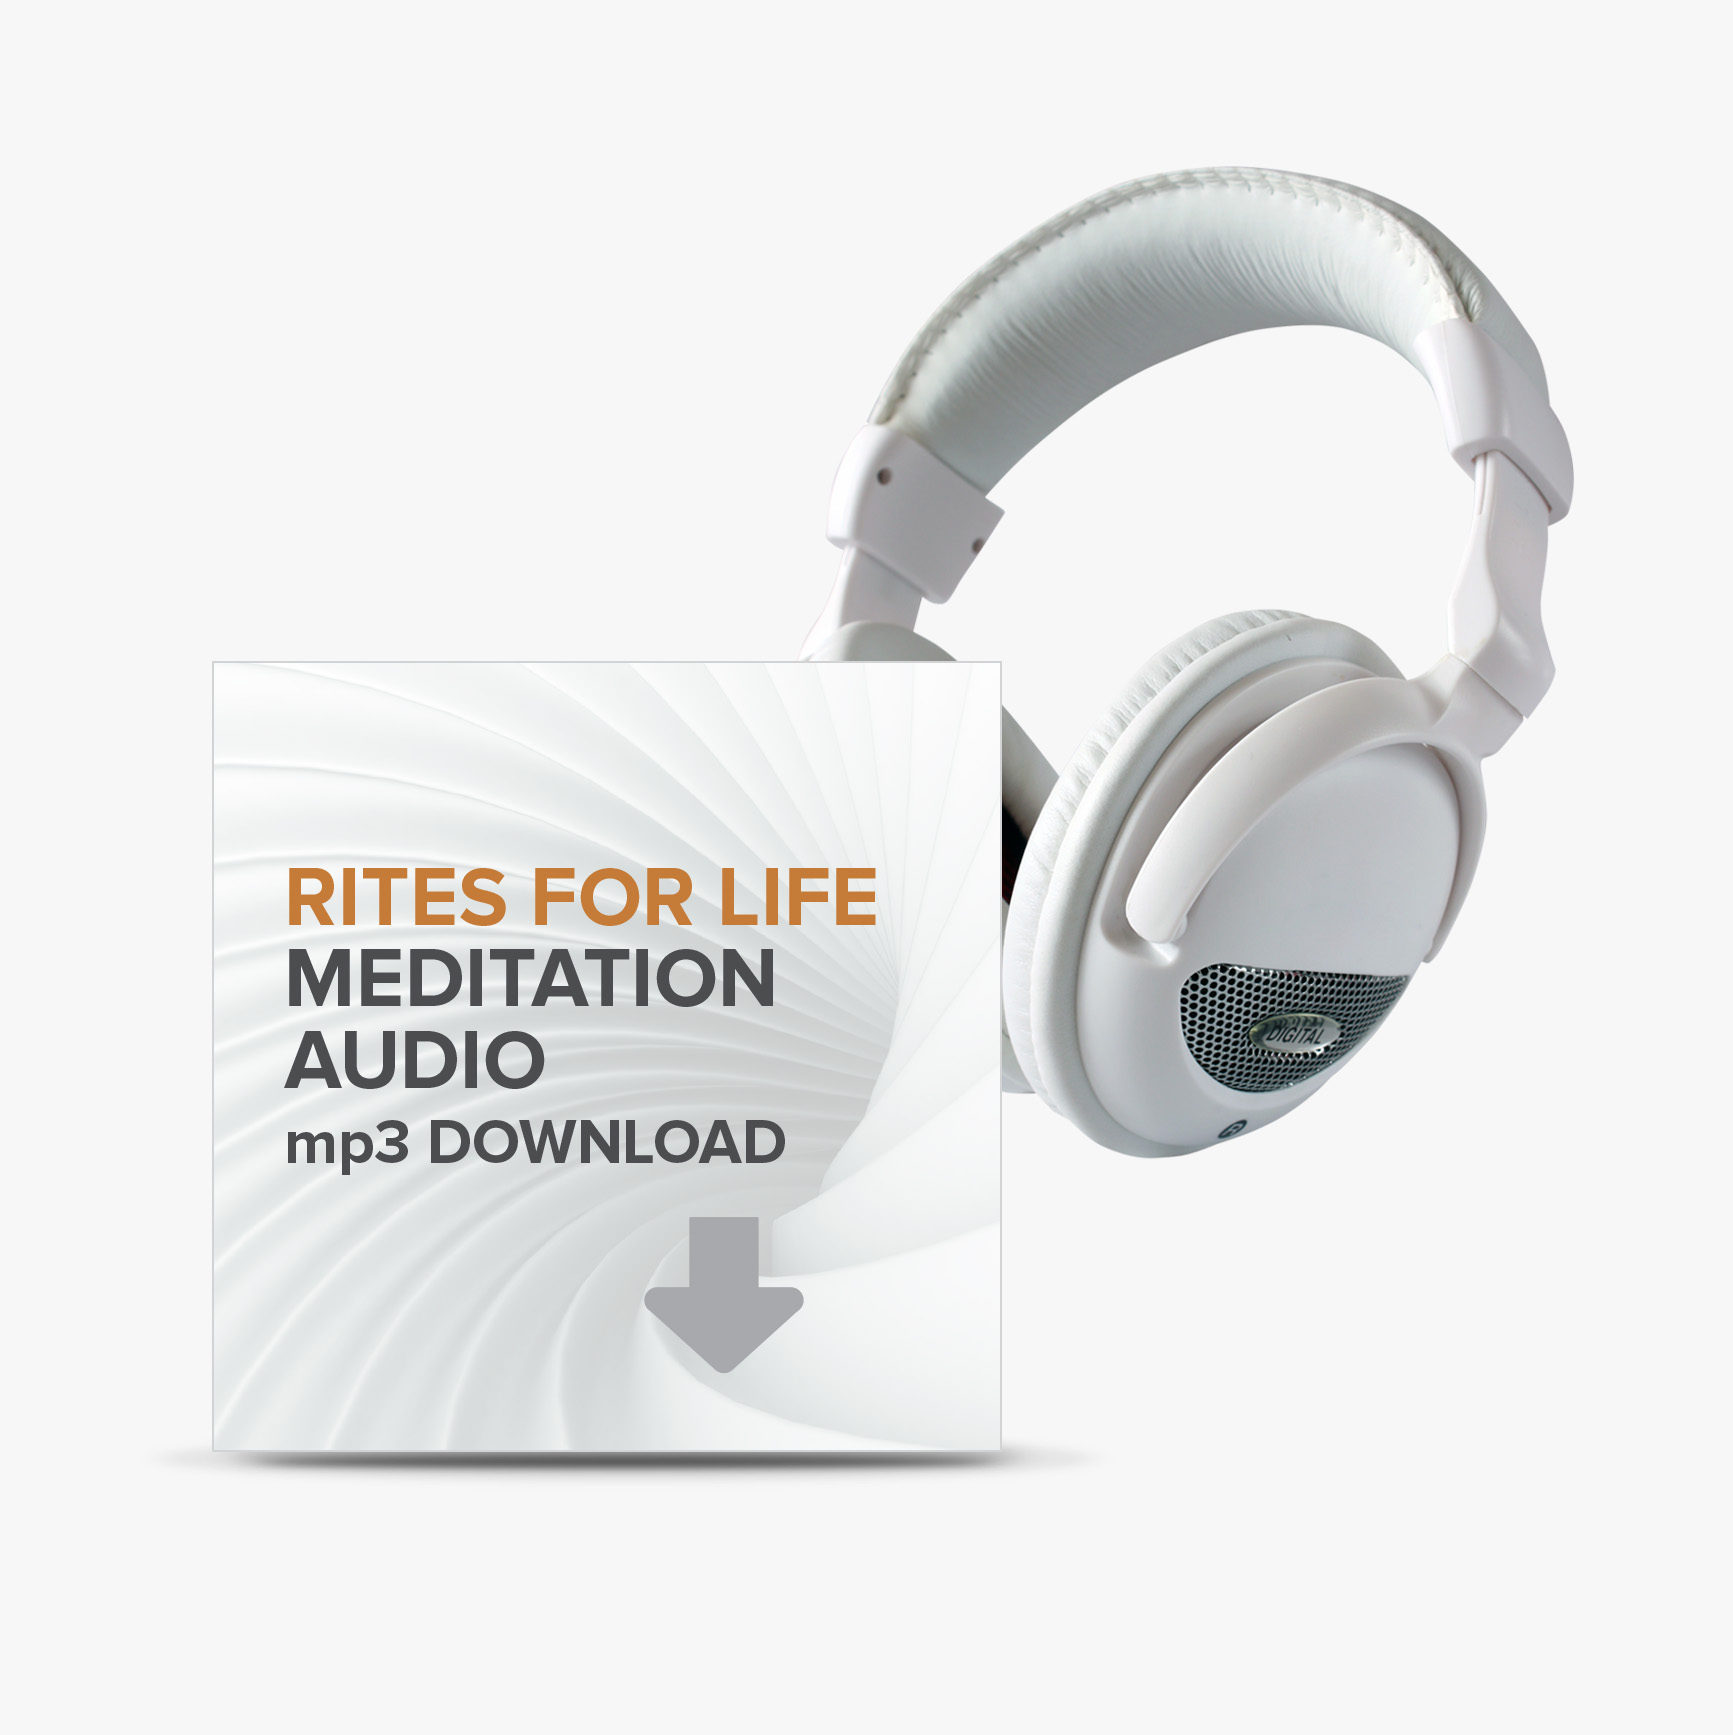 rites_for_life_store_audio_mp3.jpg